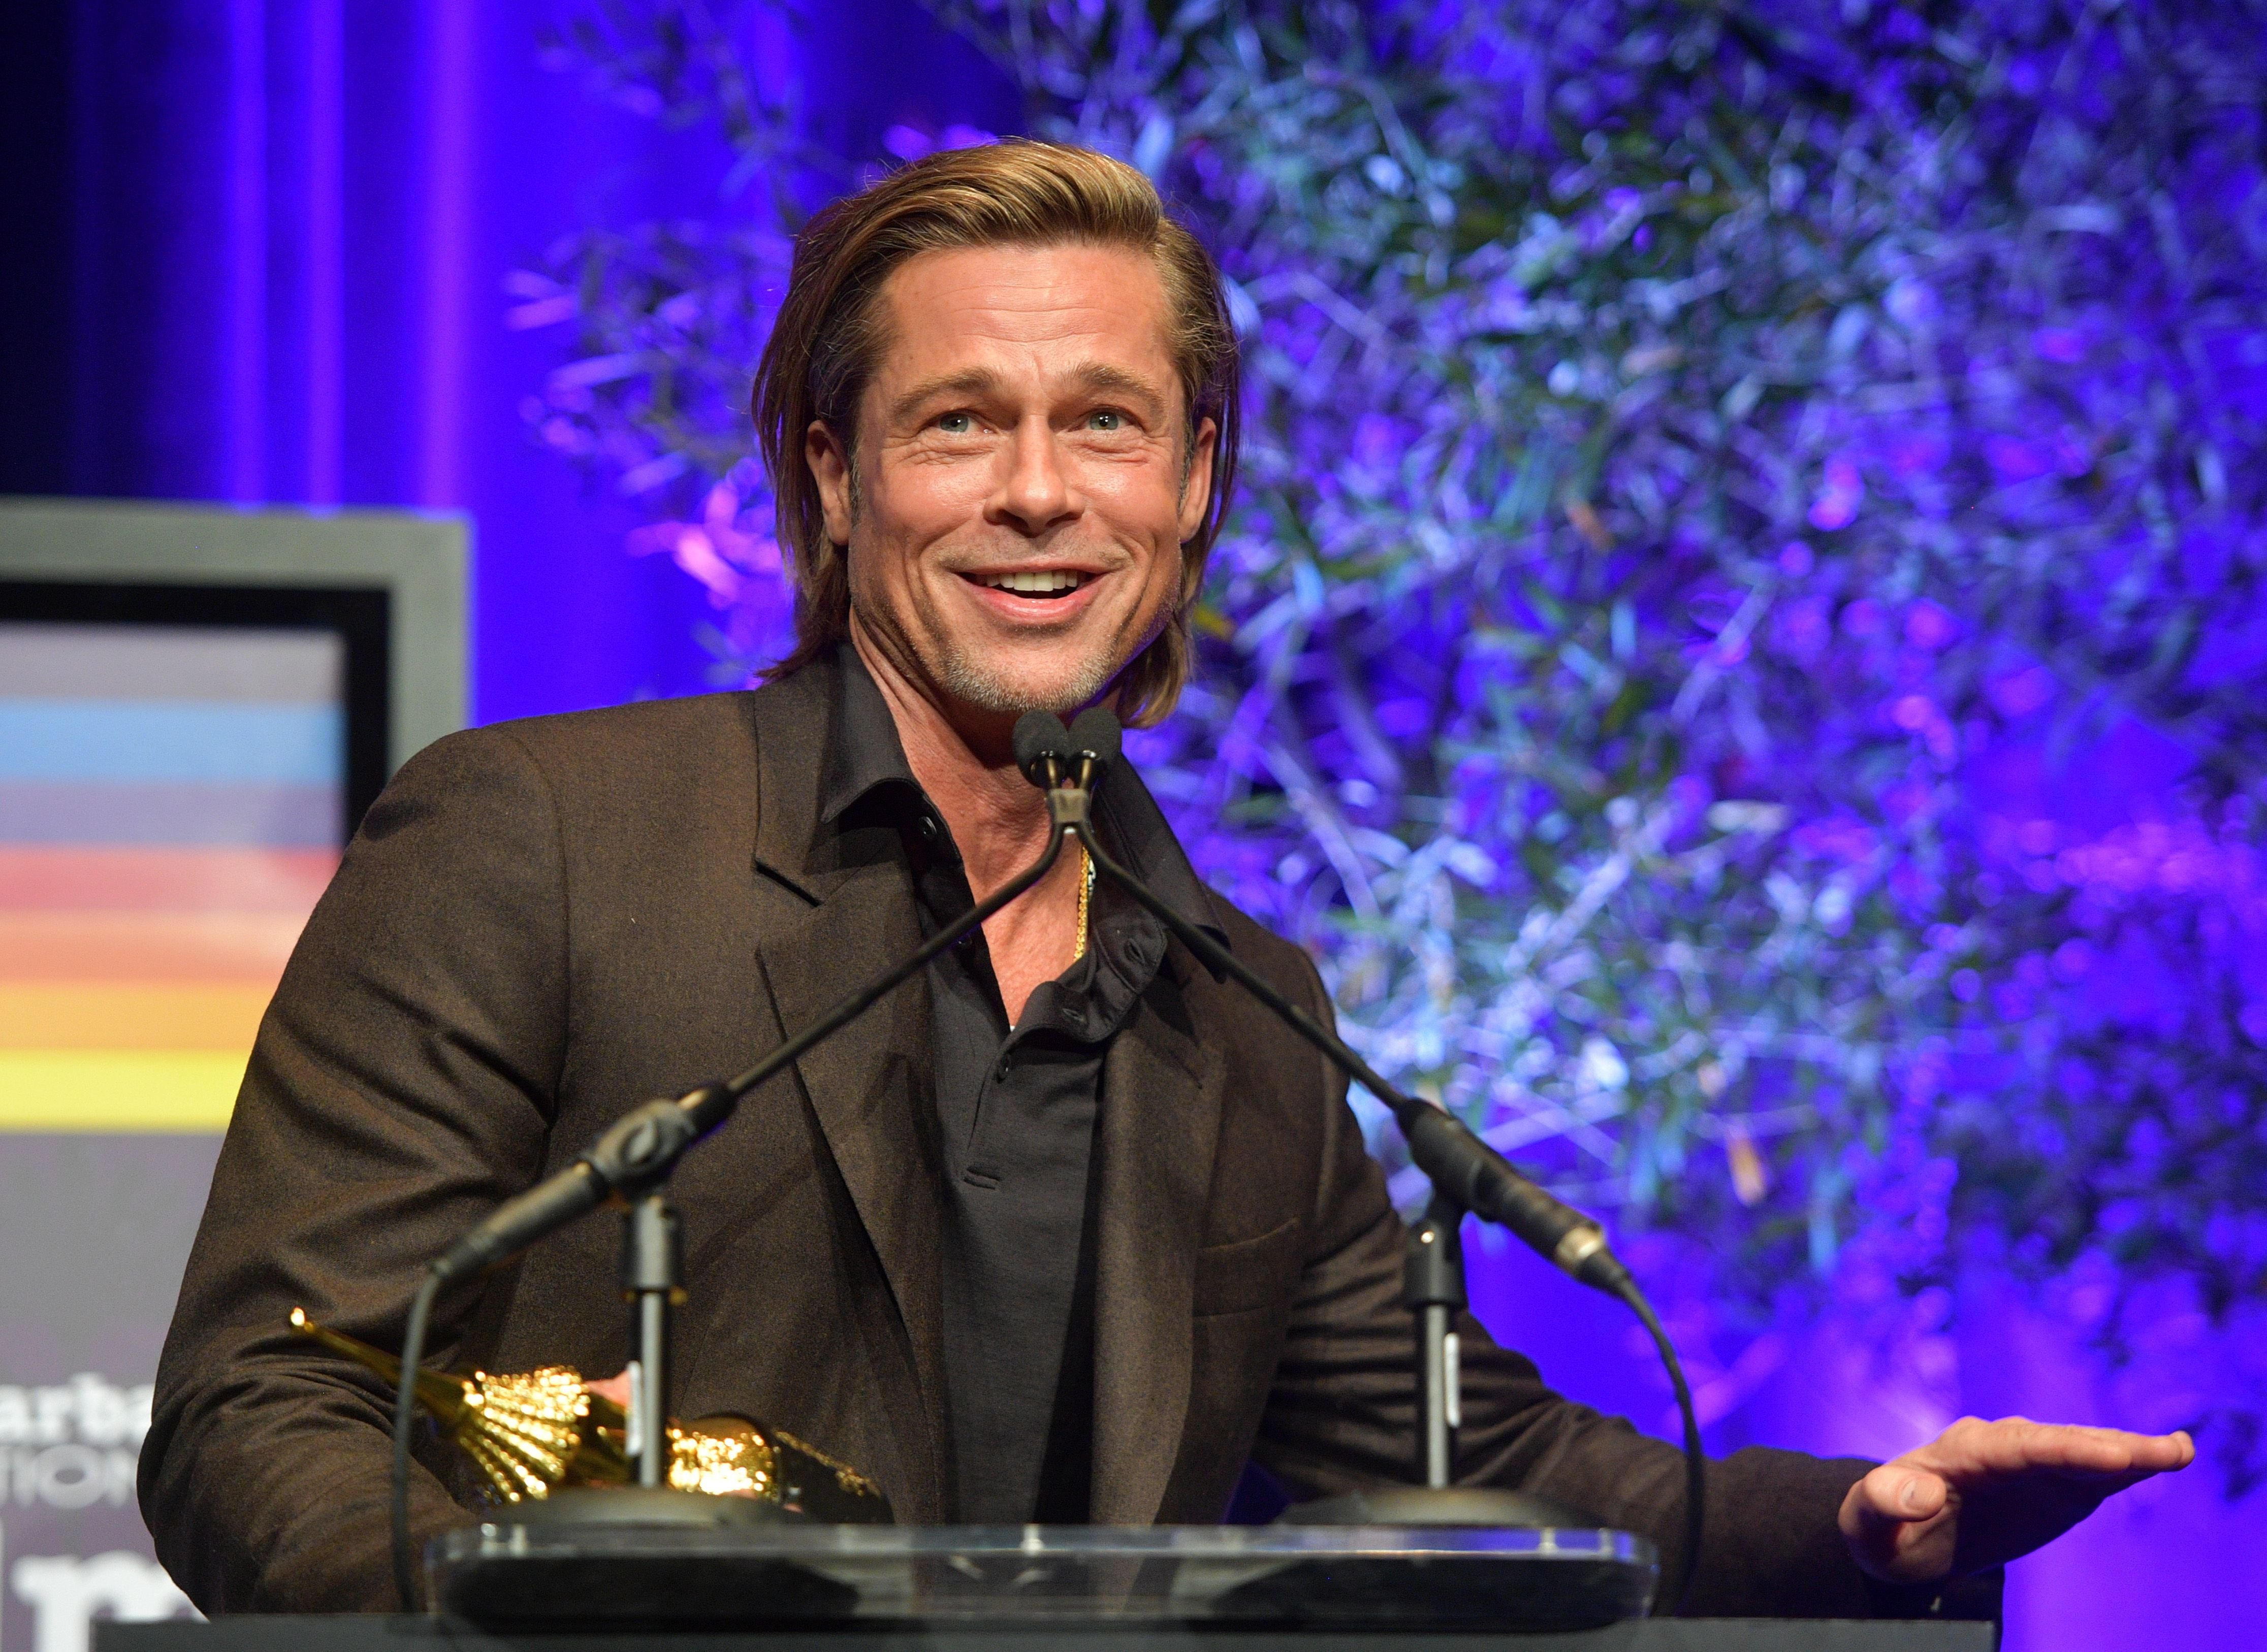 Brad Pitt speaks onstage at the Maltin Modern Master Award Honoring Brad Pitt during the 35th Santa Barbara International Film Festival at the Arlington Theatre/Photo:Getty Images